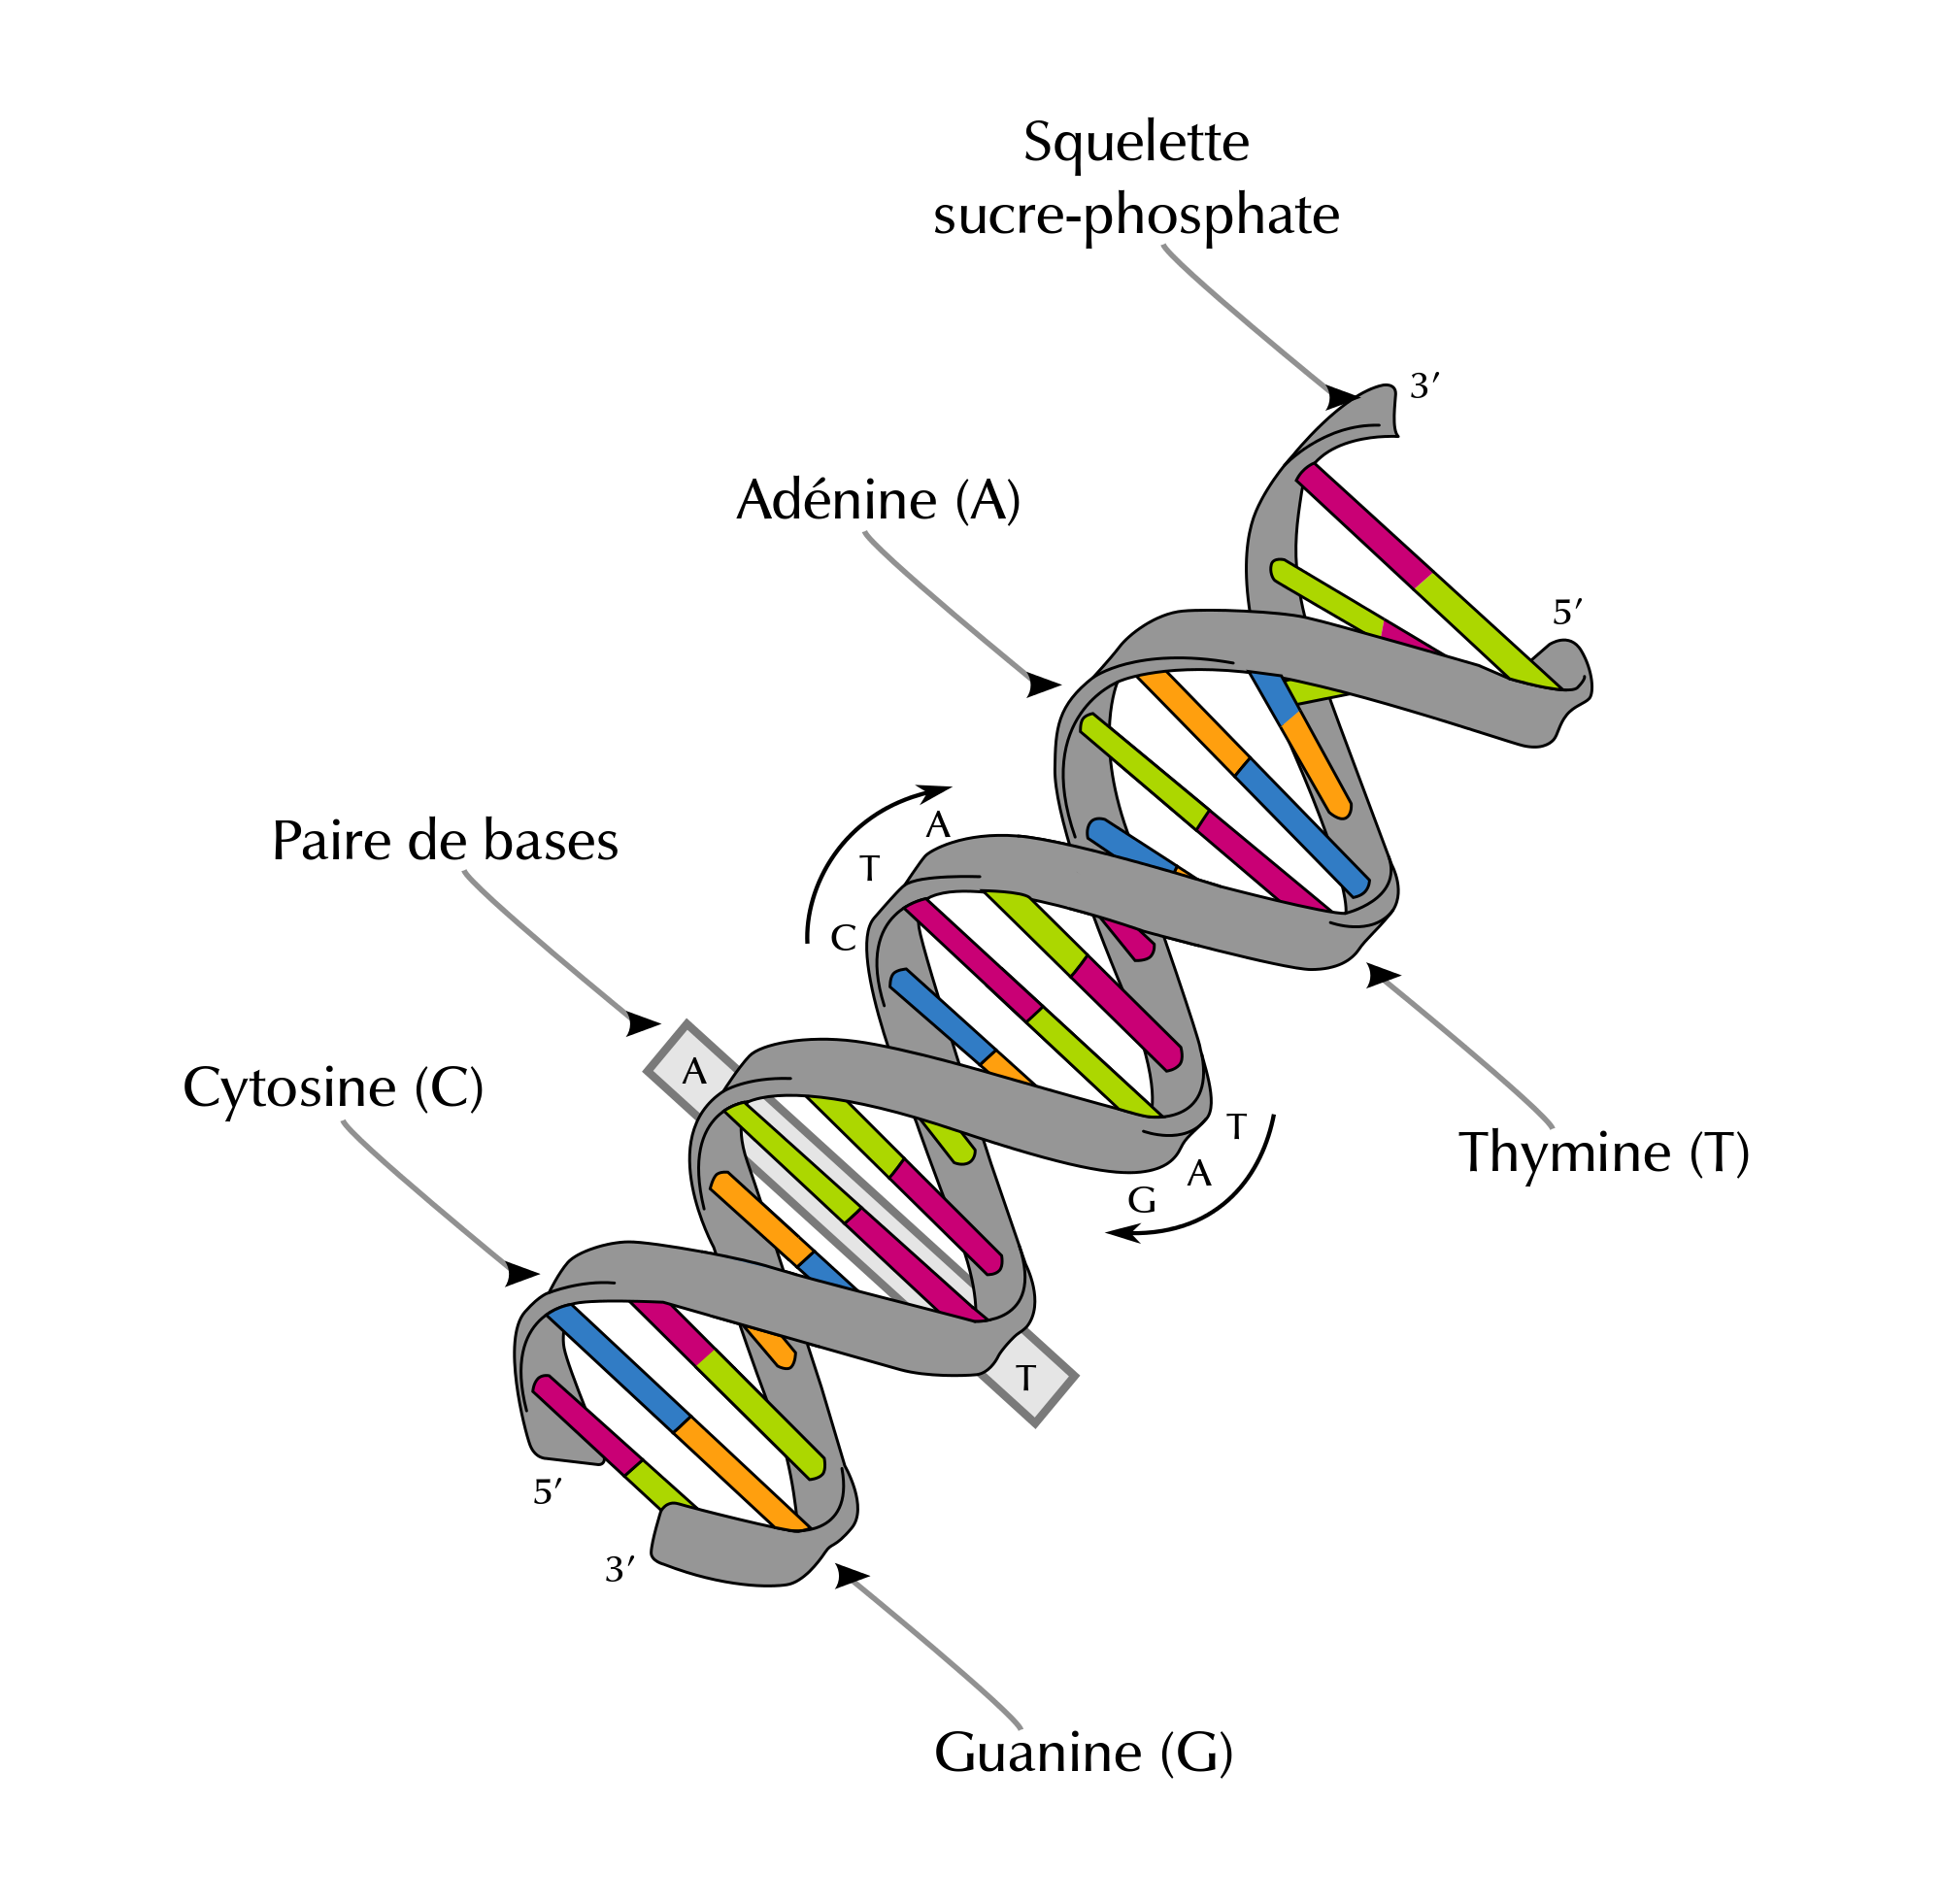 Forensic drawing autopsy. File dna structure and